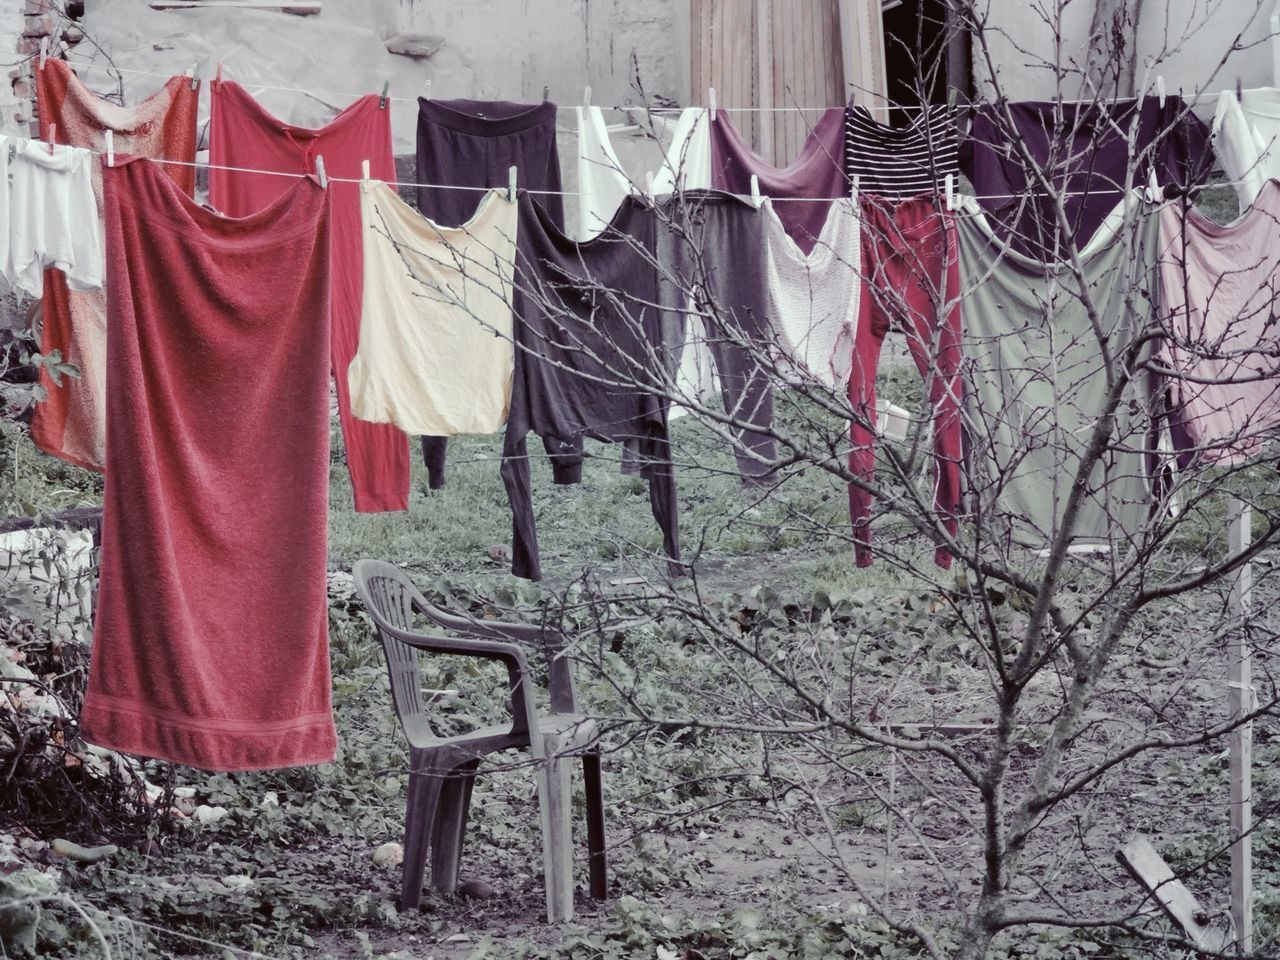 Pattern, Texture, Shape And Form Pastel Power Showcase: November Laundry Day EyeEm Gallery Eyeem Moment EyeEmBestPics Laundry Line From My Point Of View Empty Chair Wandering Around Aimlessly Mission Mistery Gardens And Yards